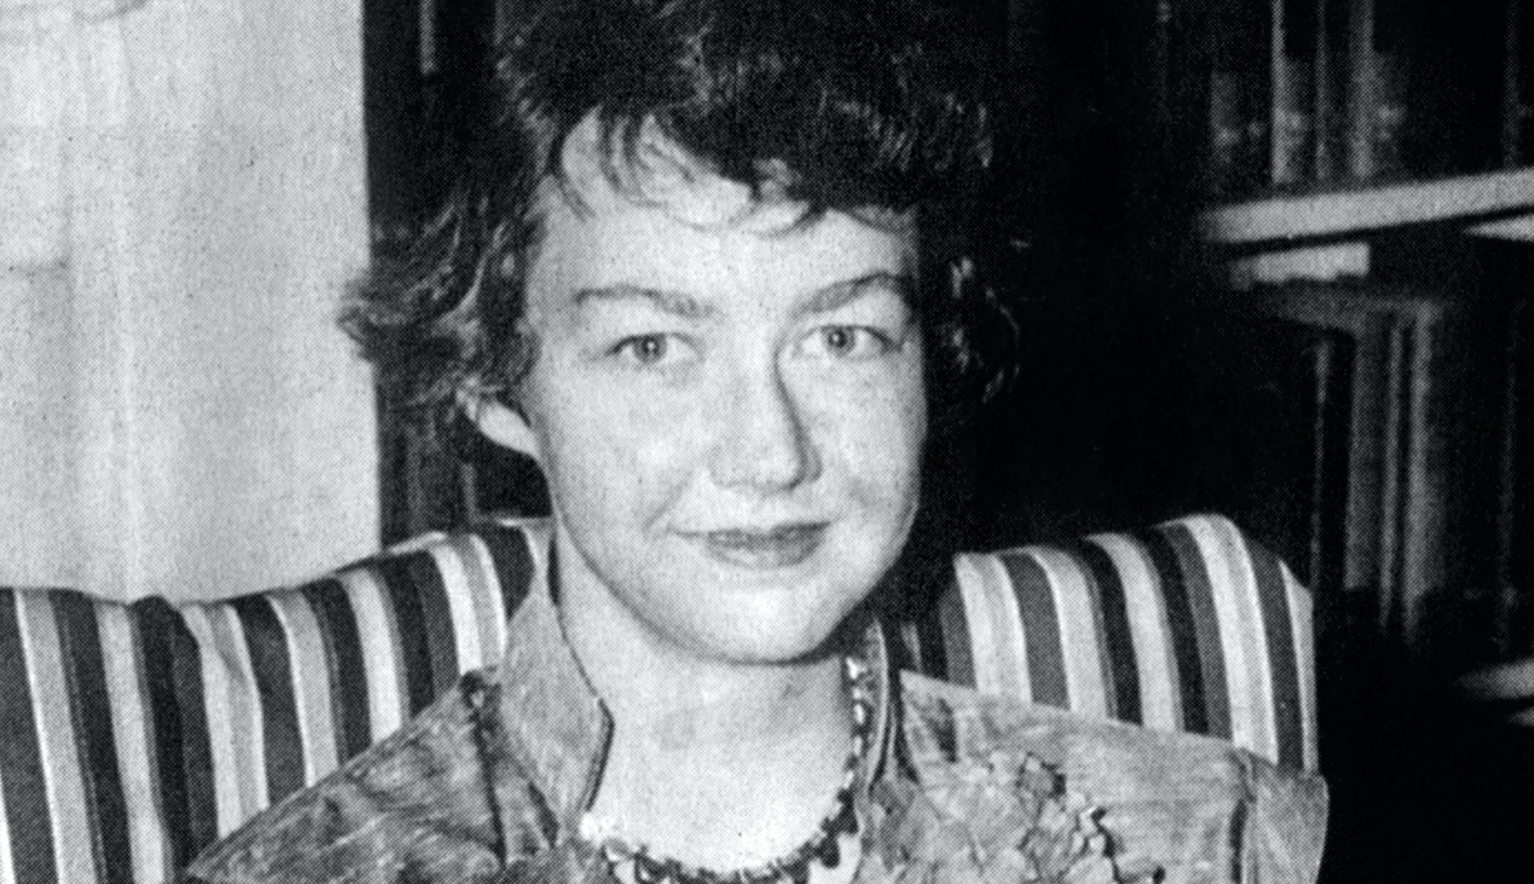 Featured in Washington Examiner Article on Flannery O'Connor